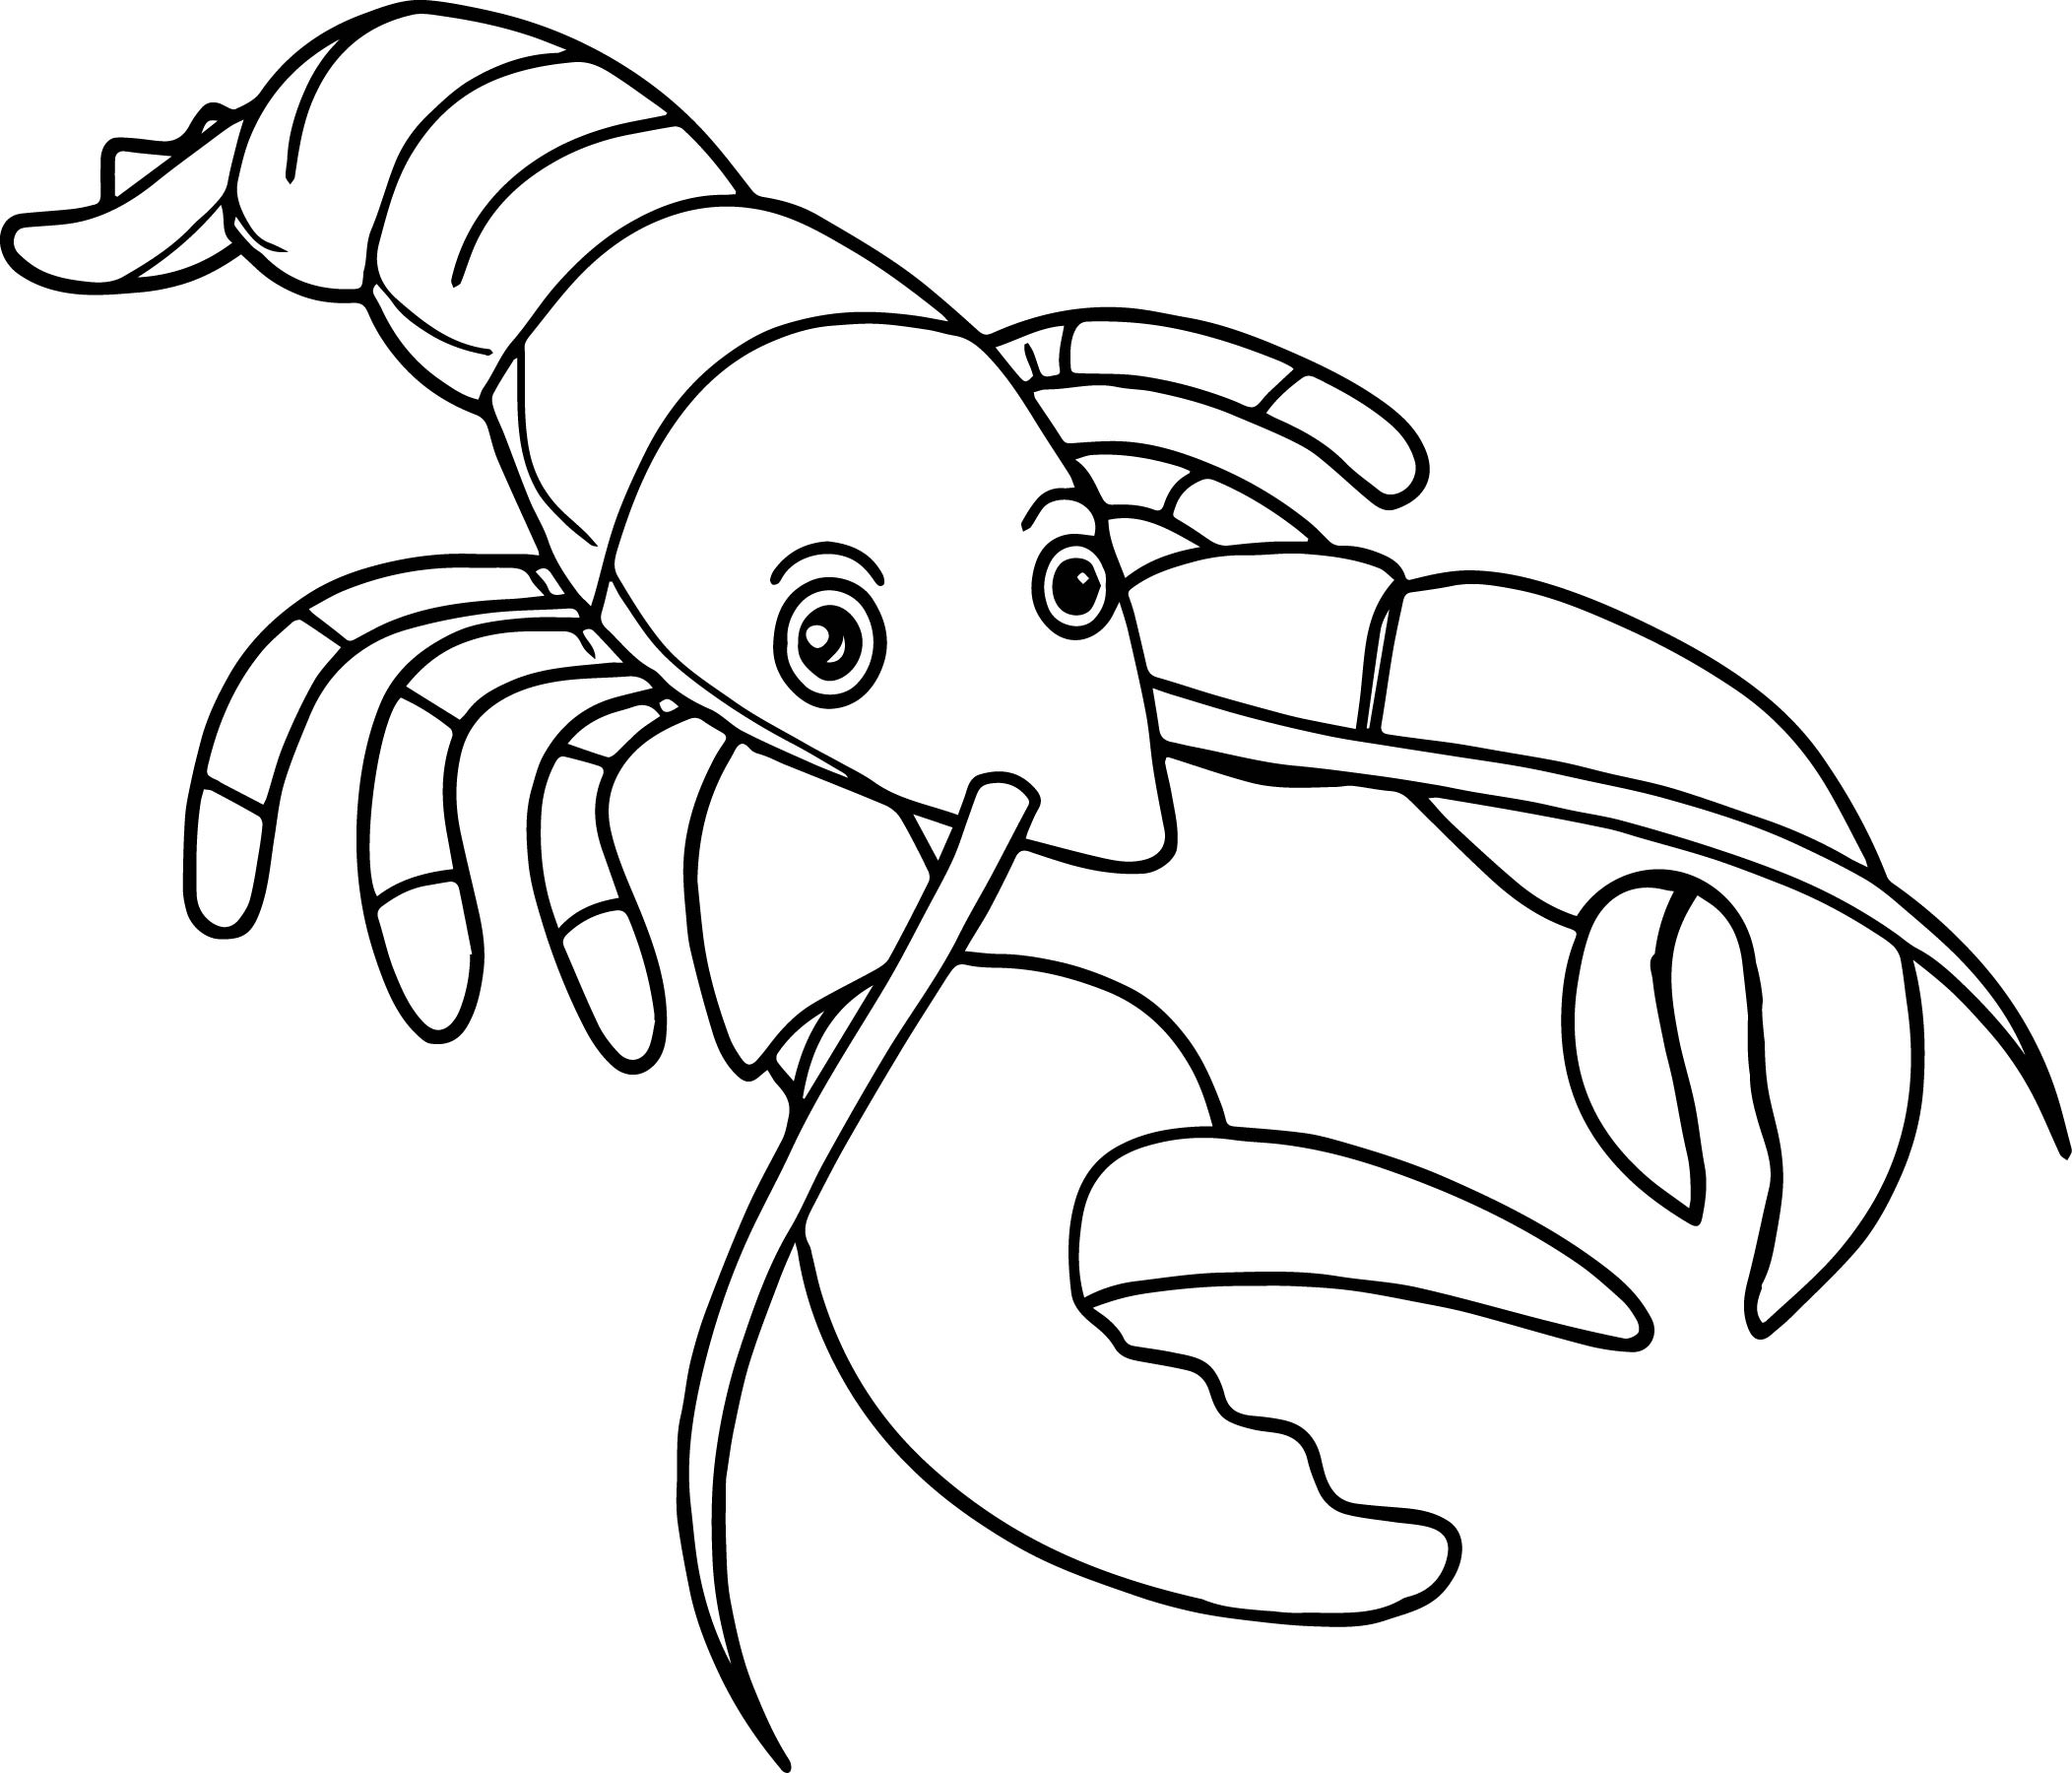 2104x1800 Best Of Lobster Page To Color Gallery Printable Coloring Sheet